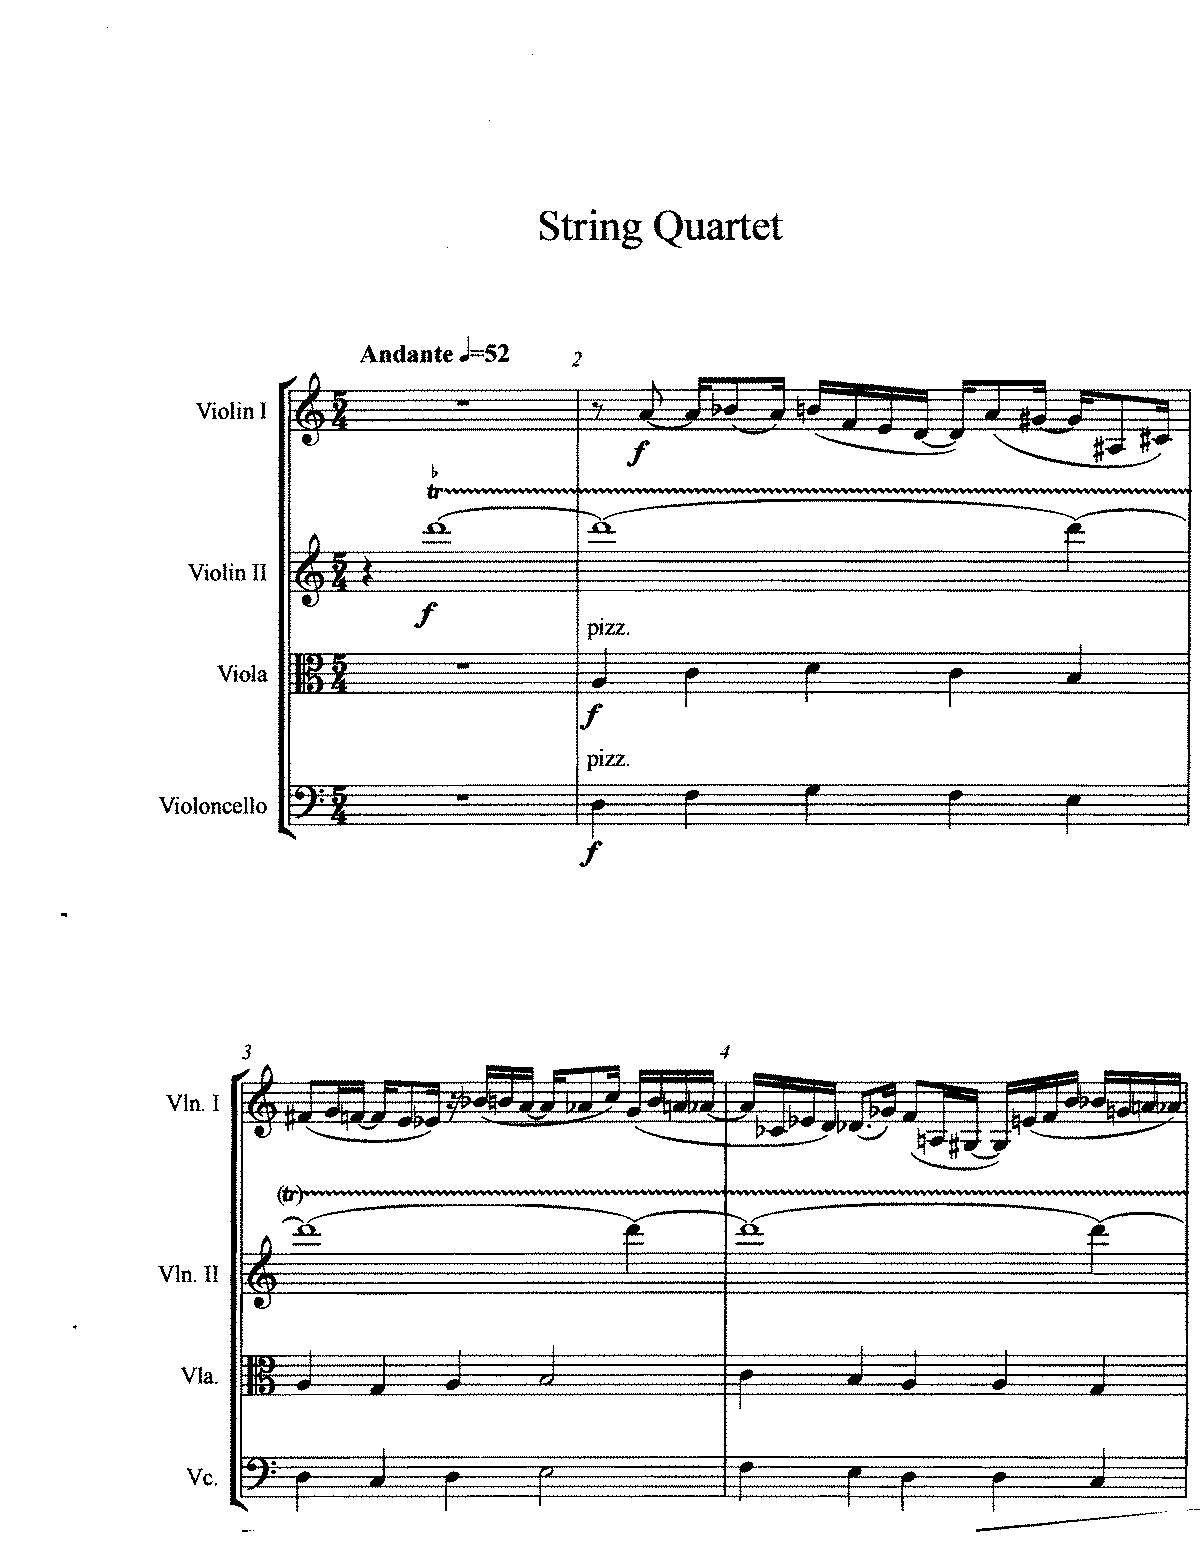 PMLP694000-Violette, A String Quartet 0 final.pdf